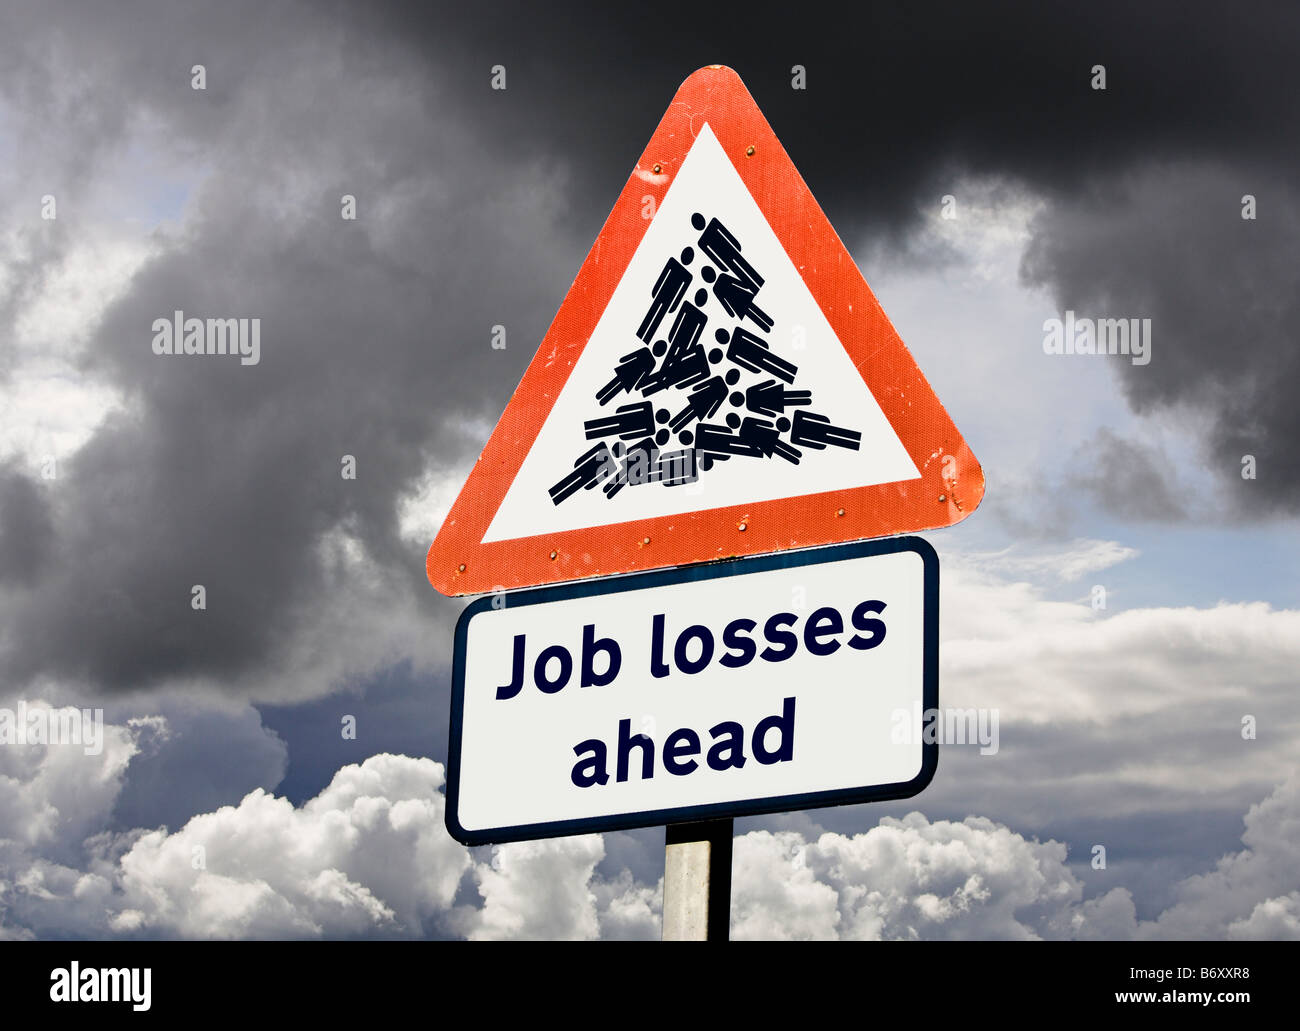 Economy warning unemployment job cuts concept UK - Job Losses Ahead sign - Stock Image